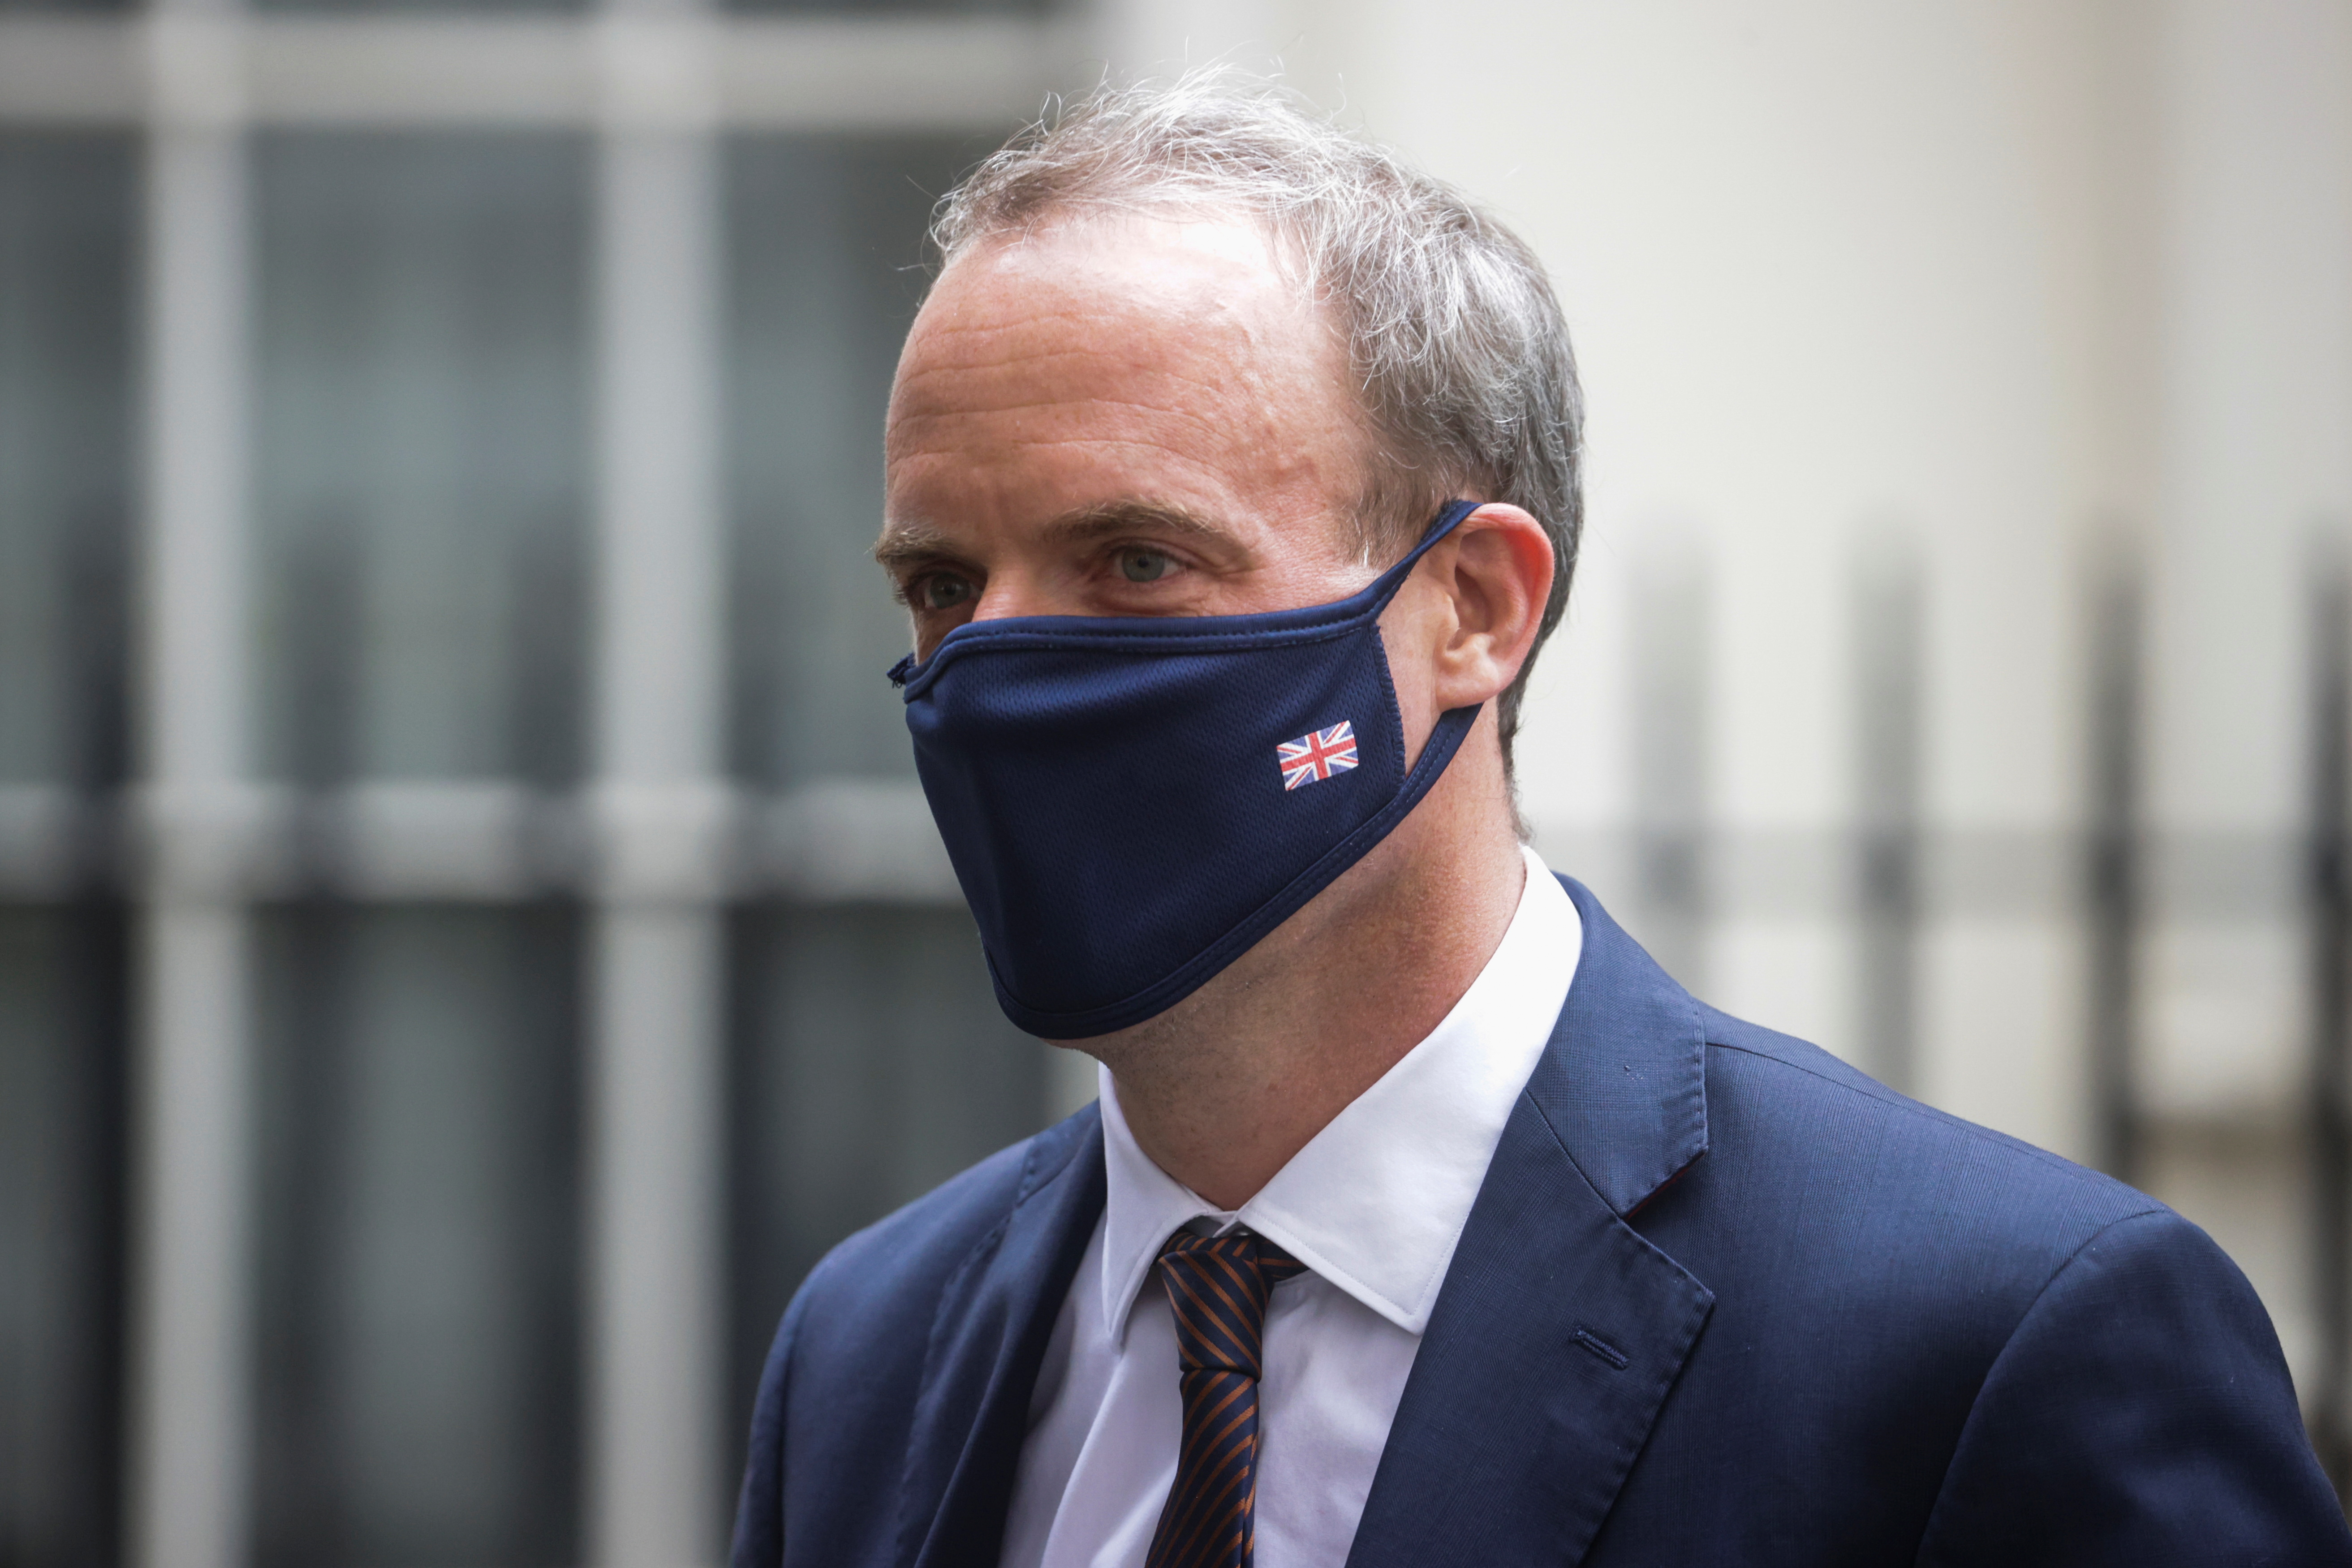 Britain's Foreign Secretary Dominic Raab walks outside Downing Street, in London, Britain, August 16, 2021. REUTERS/Hannah McKay